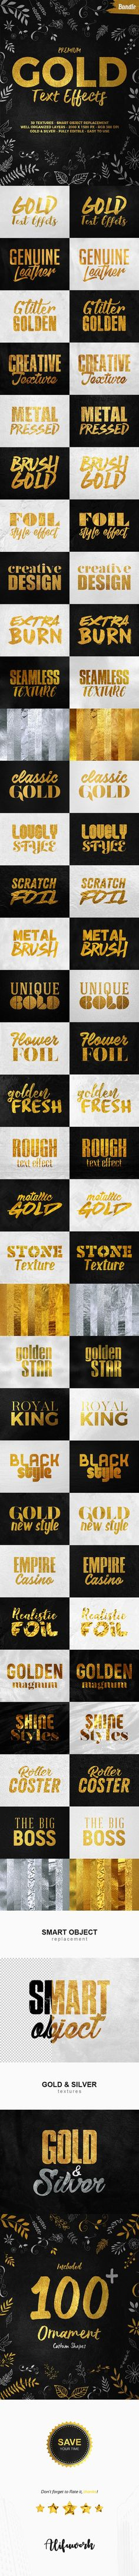 #Gold #Text Effects Bundle - Text Effects #Styles